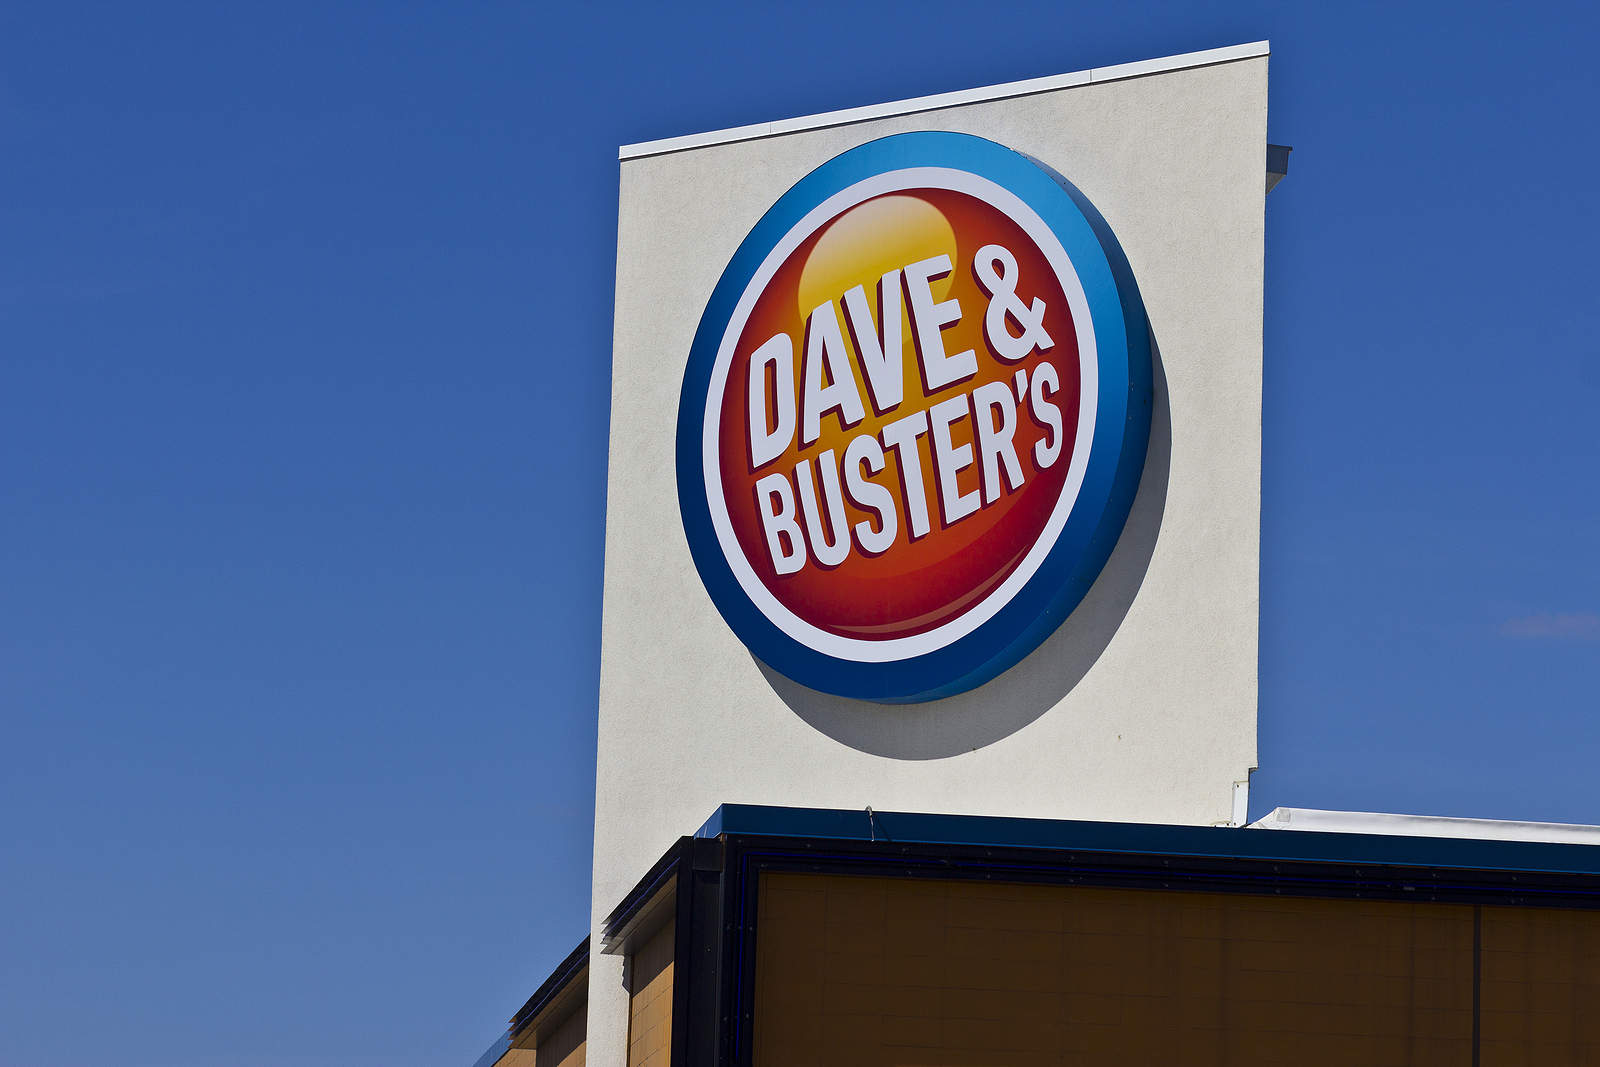 Dave and Buster's PLAY stock news and analysis